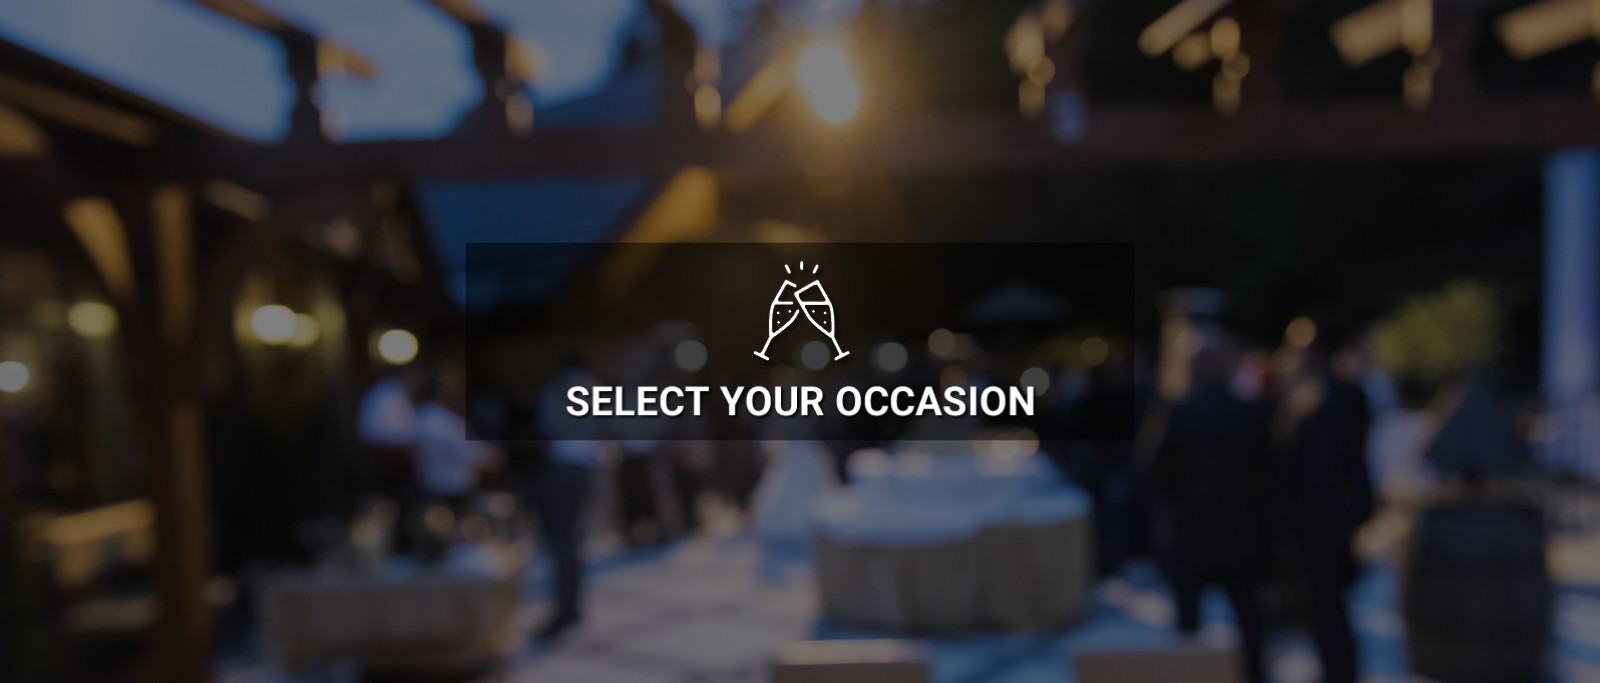 Select Your Occasion